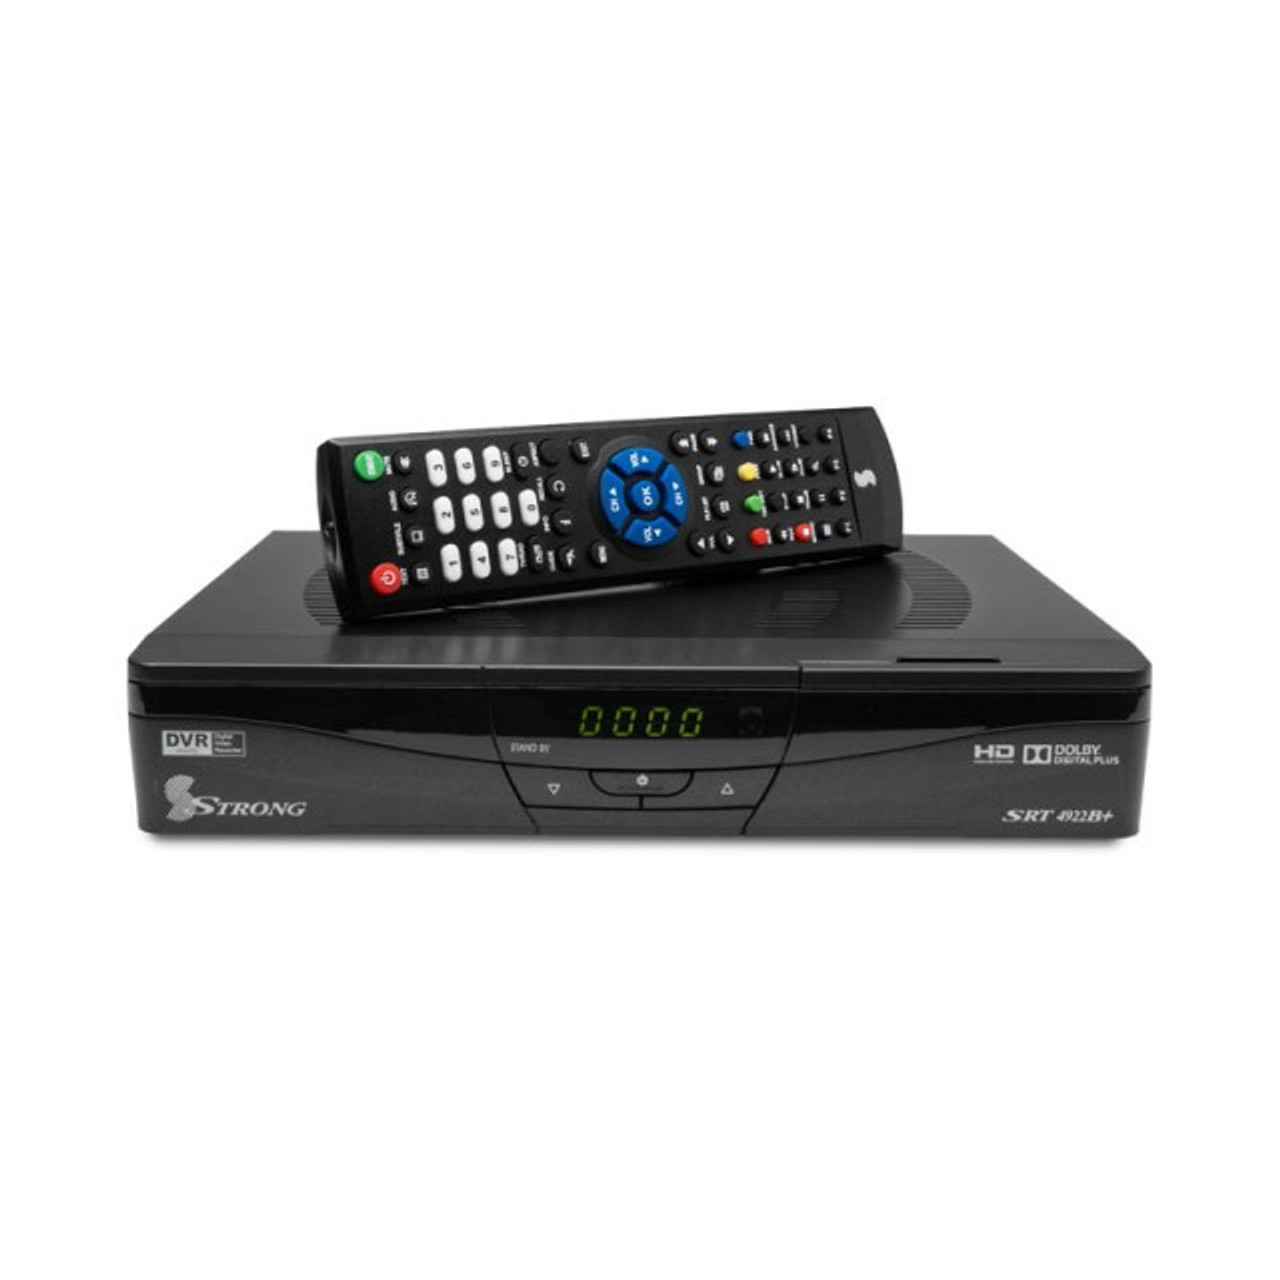 Strong SRT4922B+ 1080p High Def Satellite Receiver with HDMI Output